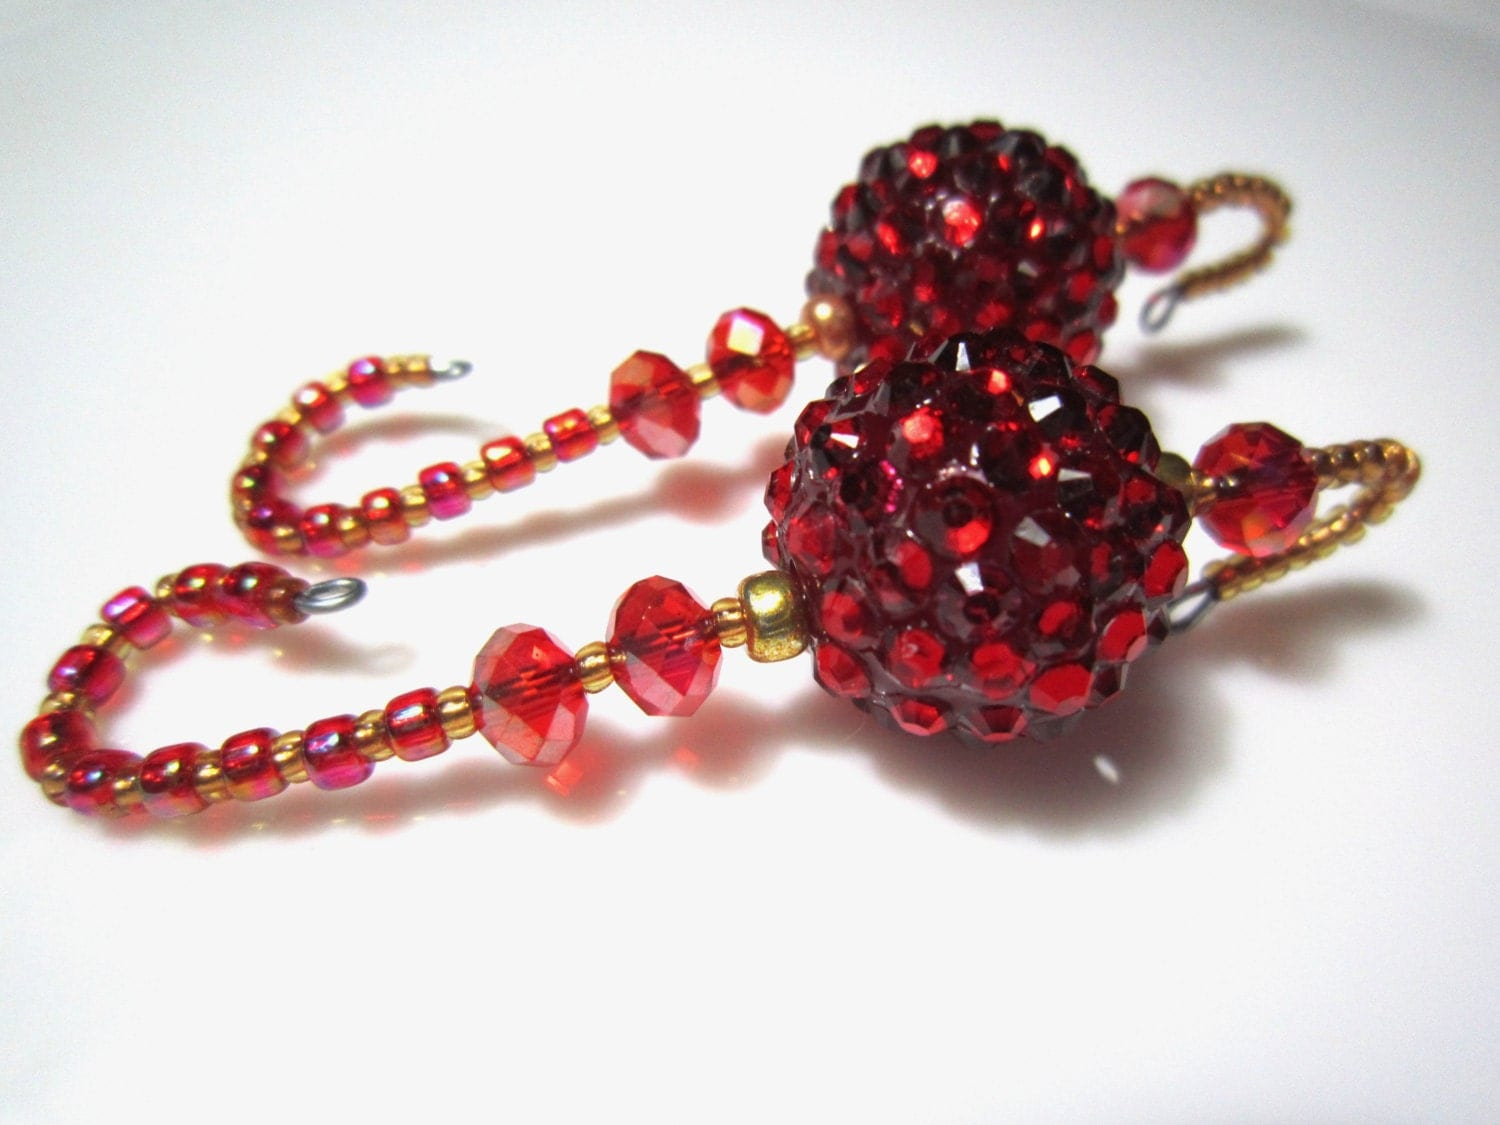 Red Jewel Beaded Christmas Ornament Hangers 2 Showstopper